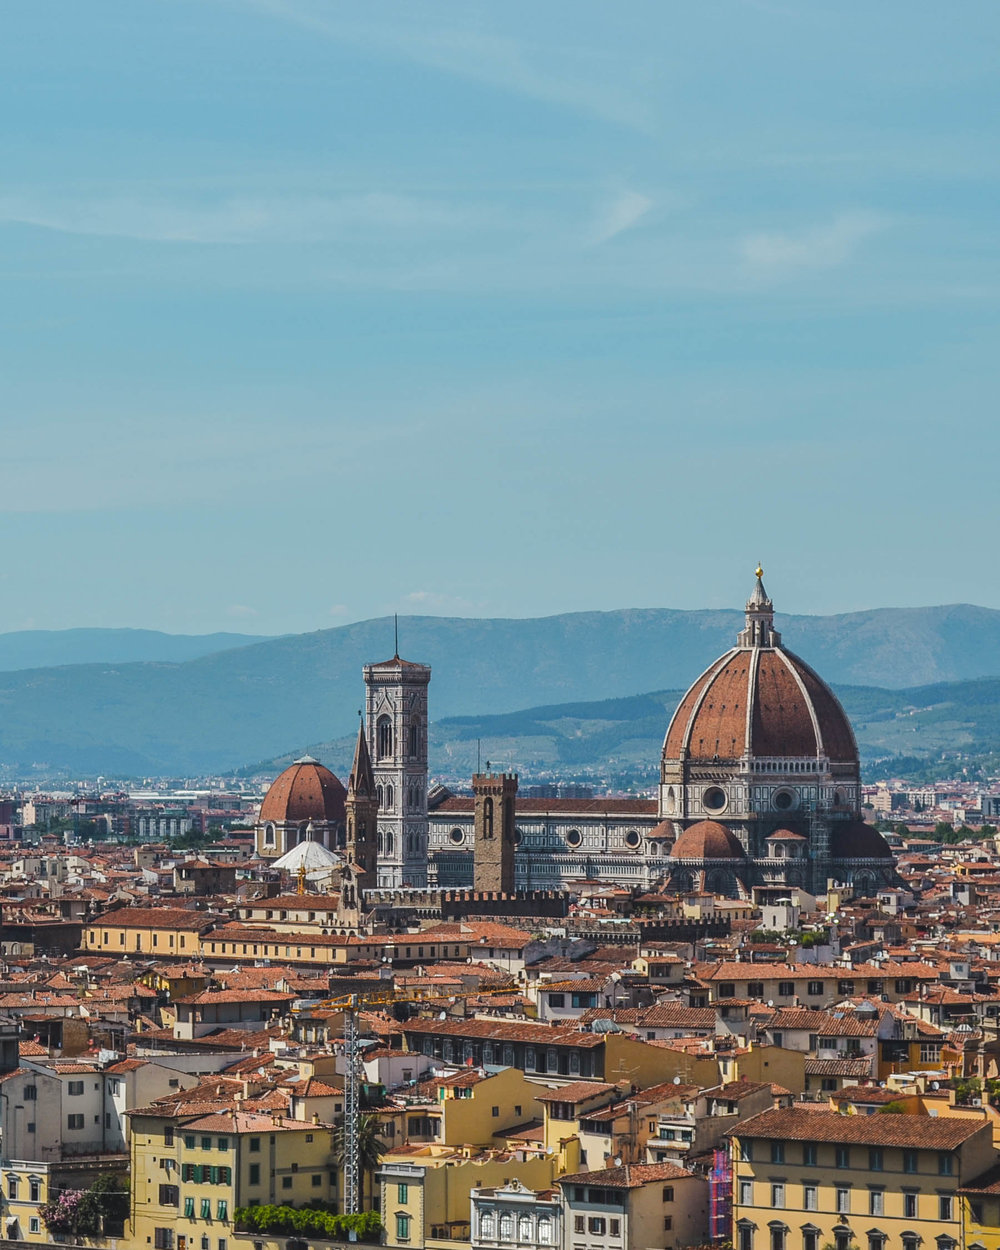 View of the Duomo from Piazzale Michaelangelo in Florence, Italy